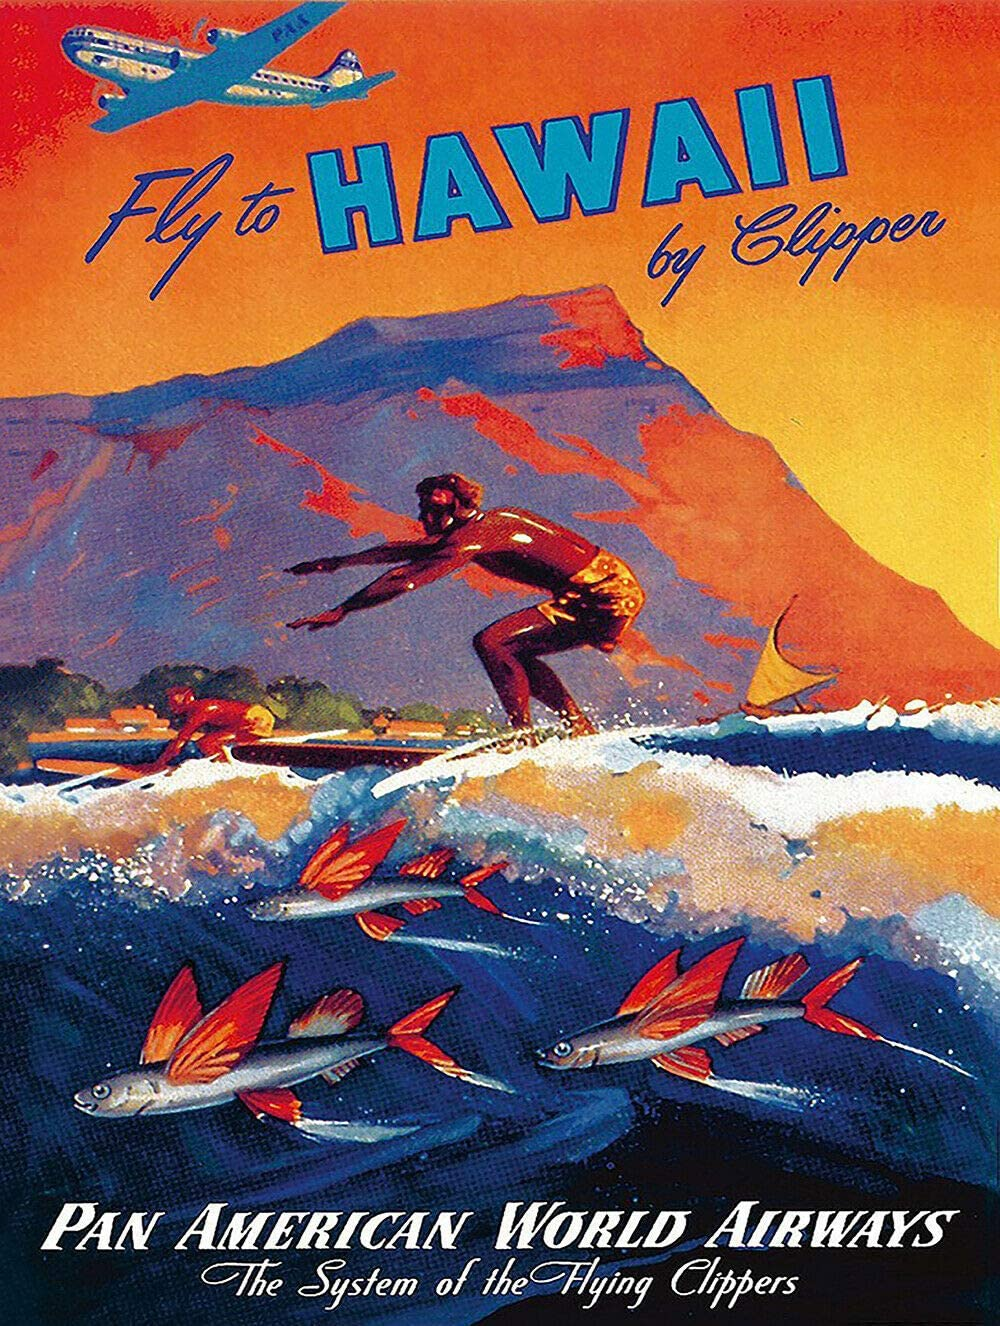 """Hawaii Pan American Airlines Metal Sign Polynesian Decor Vintage Aluminum Metal Signs Tin Plaques Wall Poster for Garage Man Cave Beer Cafee Bar Pub Club Home Decor 8""""x12"""""""